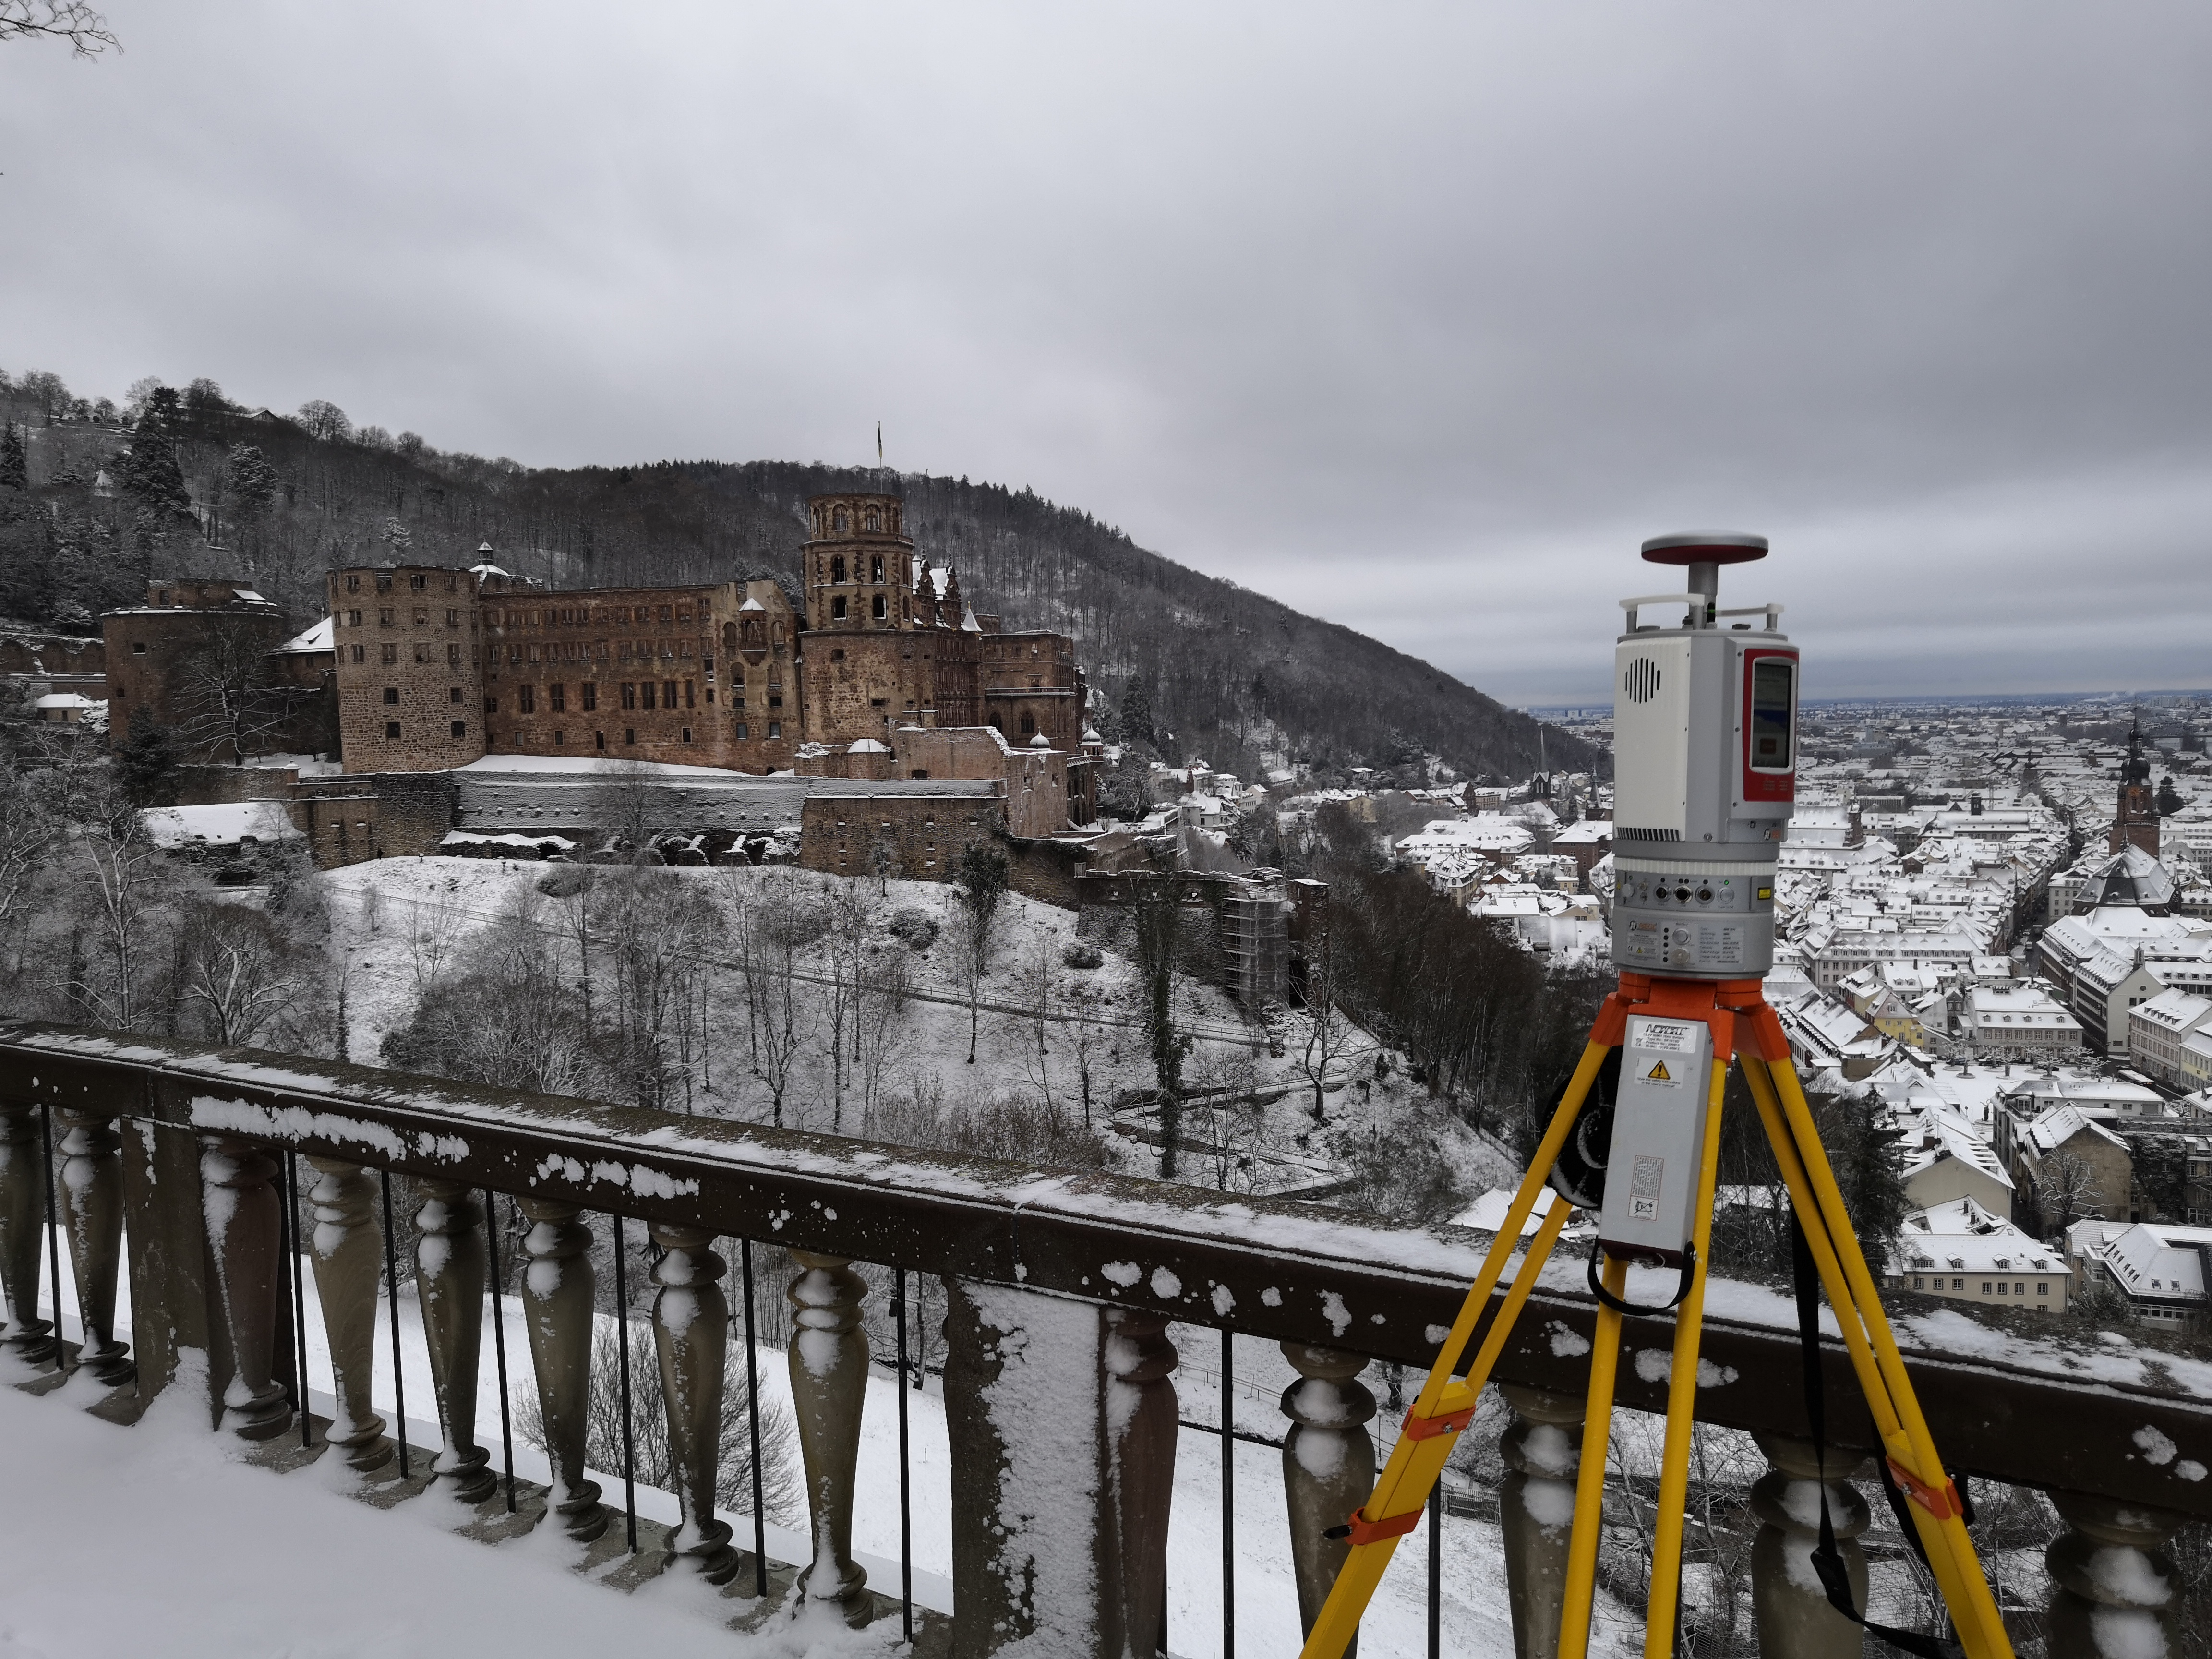 Geodata acquisition with a Riegl VZ-2000i terrestrial laser scanner. Heidelberg castle is in the background.